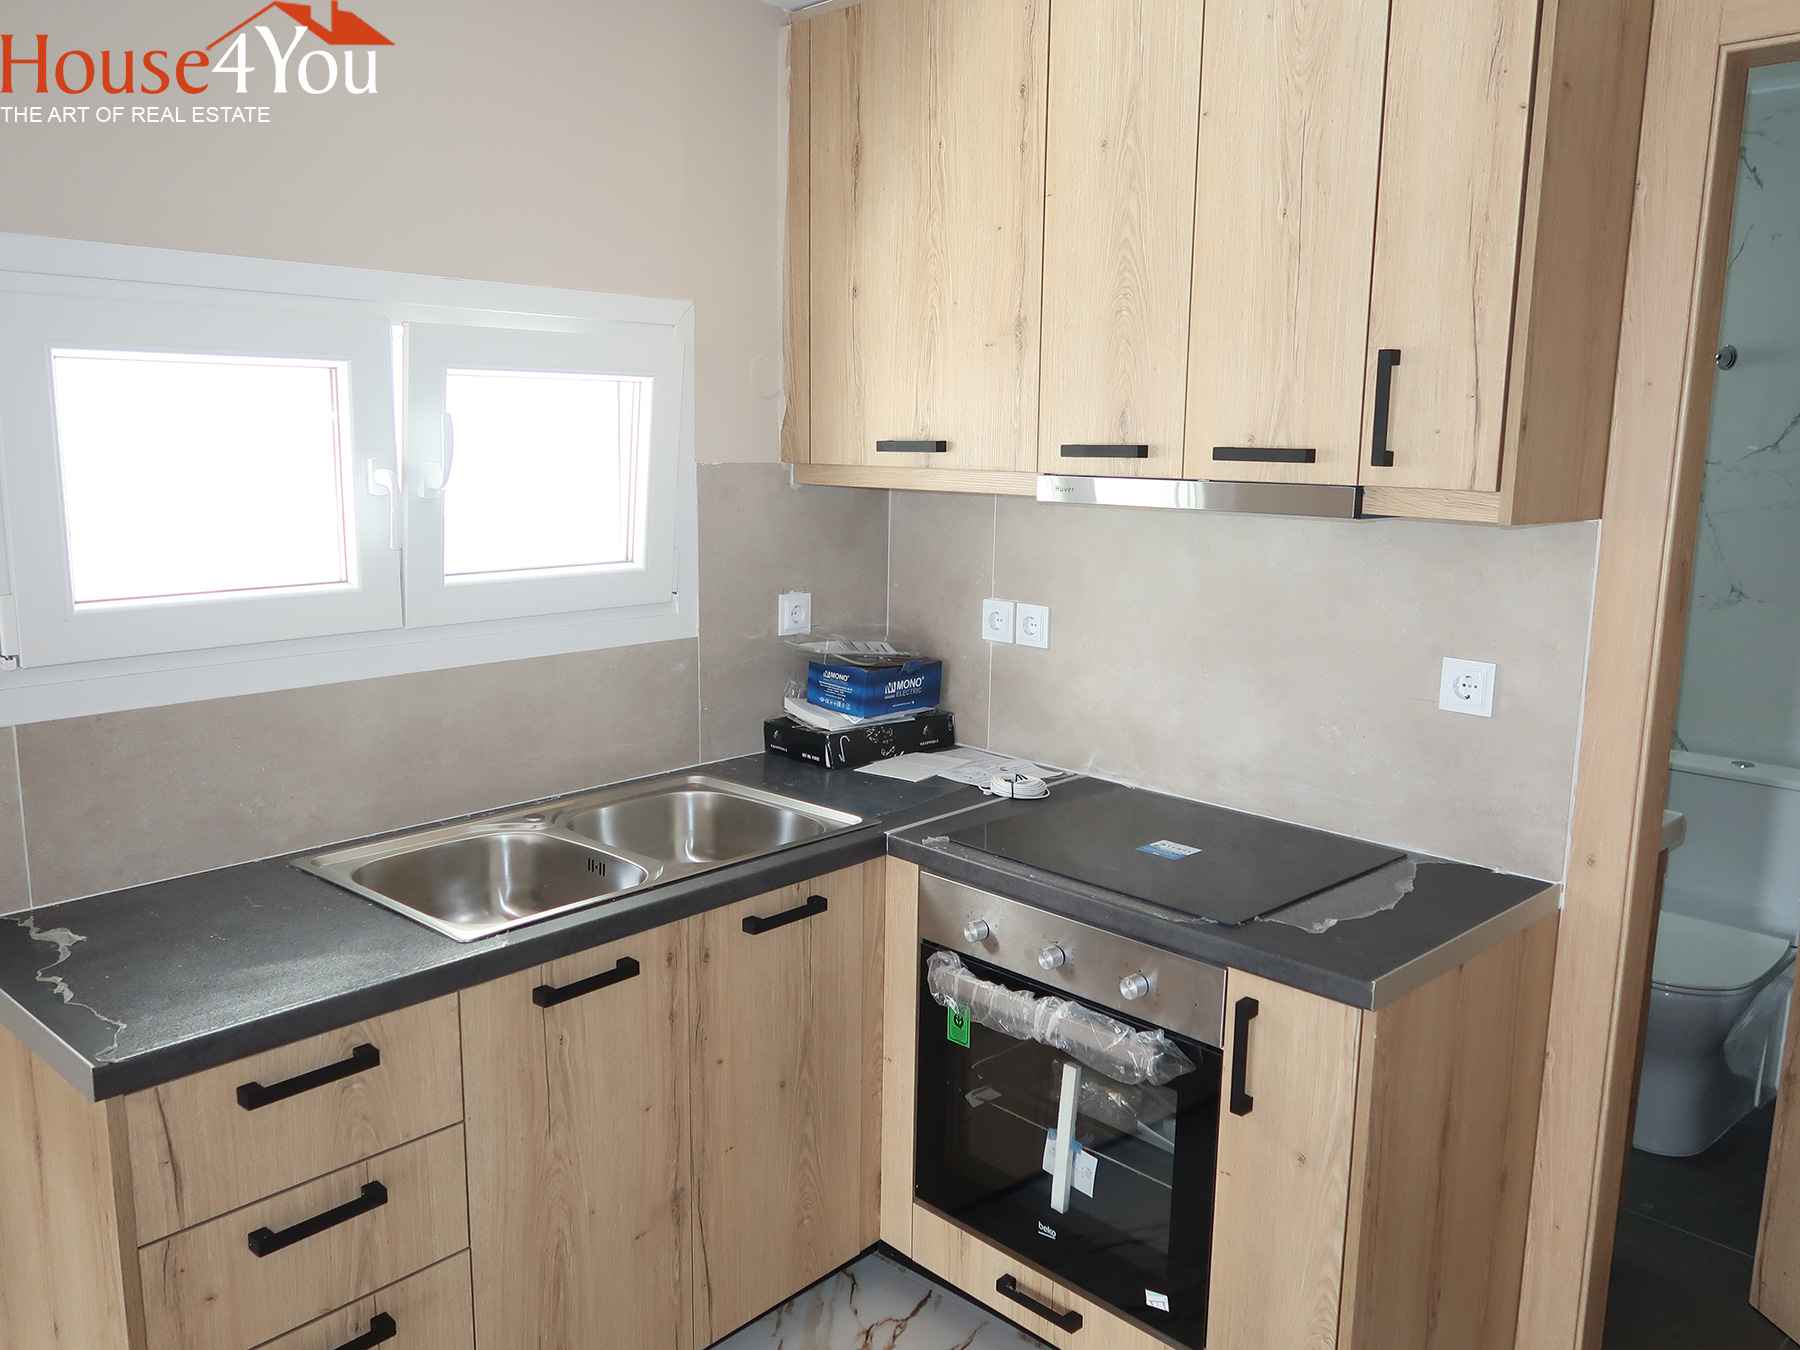 For sale a new 49sqm ground floor apartment. built in 2021 in Kaloutsiani Ioannina